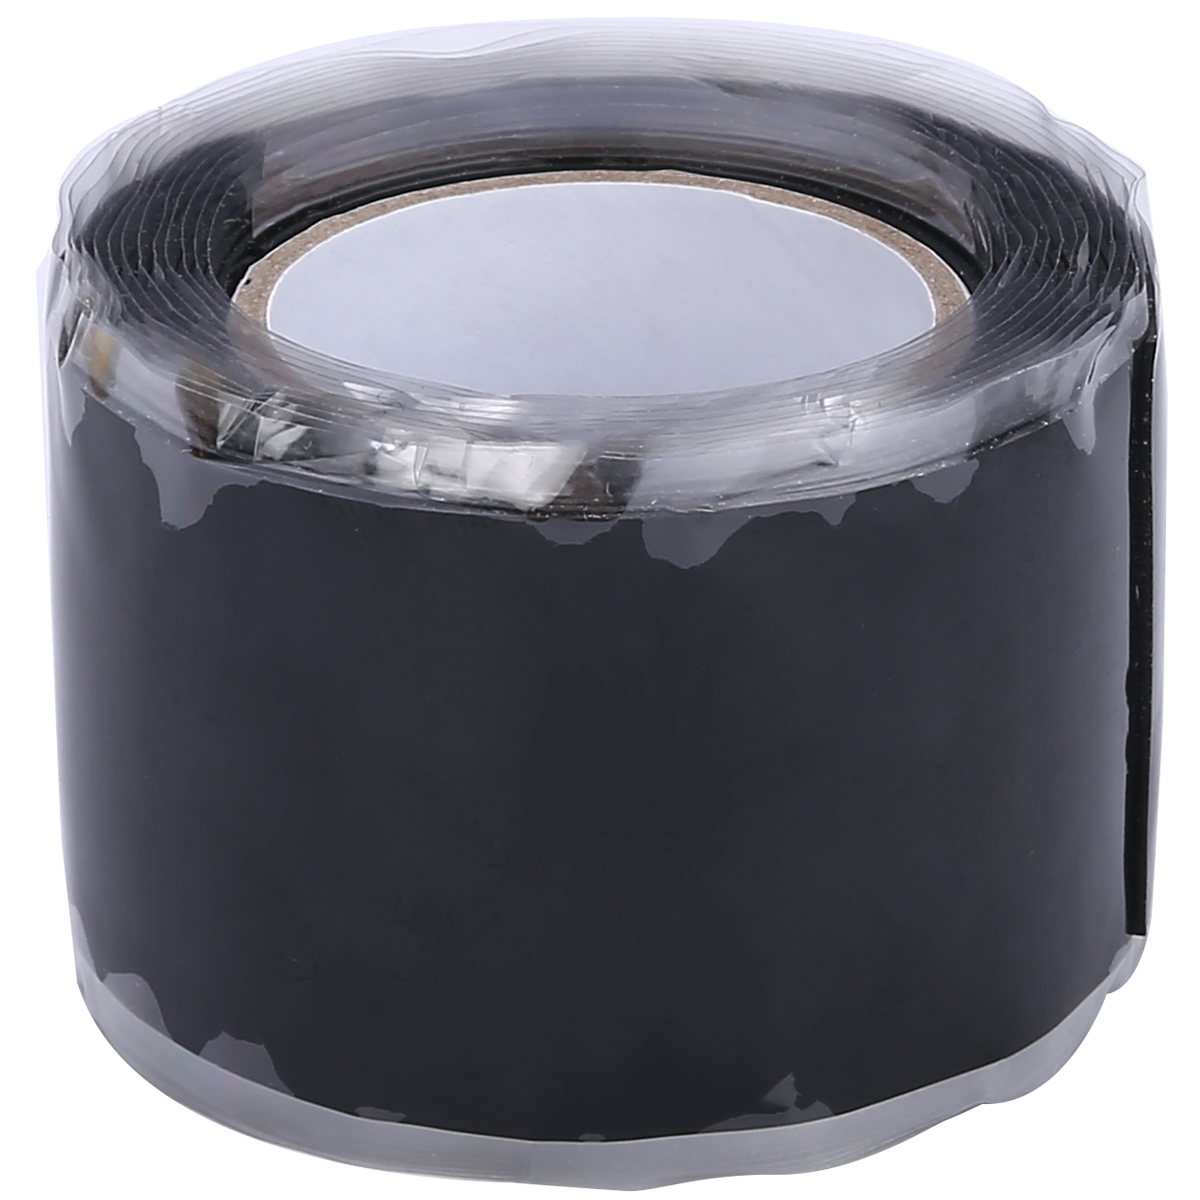 Super Waterproof Pipe Repair Tape High Temperature Resistance Stop Water Leak Burst Plumbers Self Amalgamating